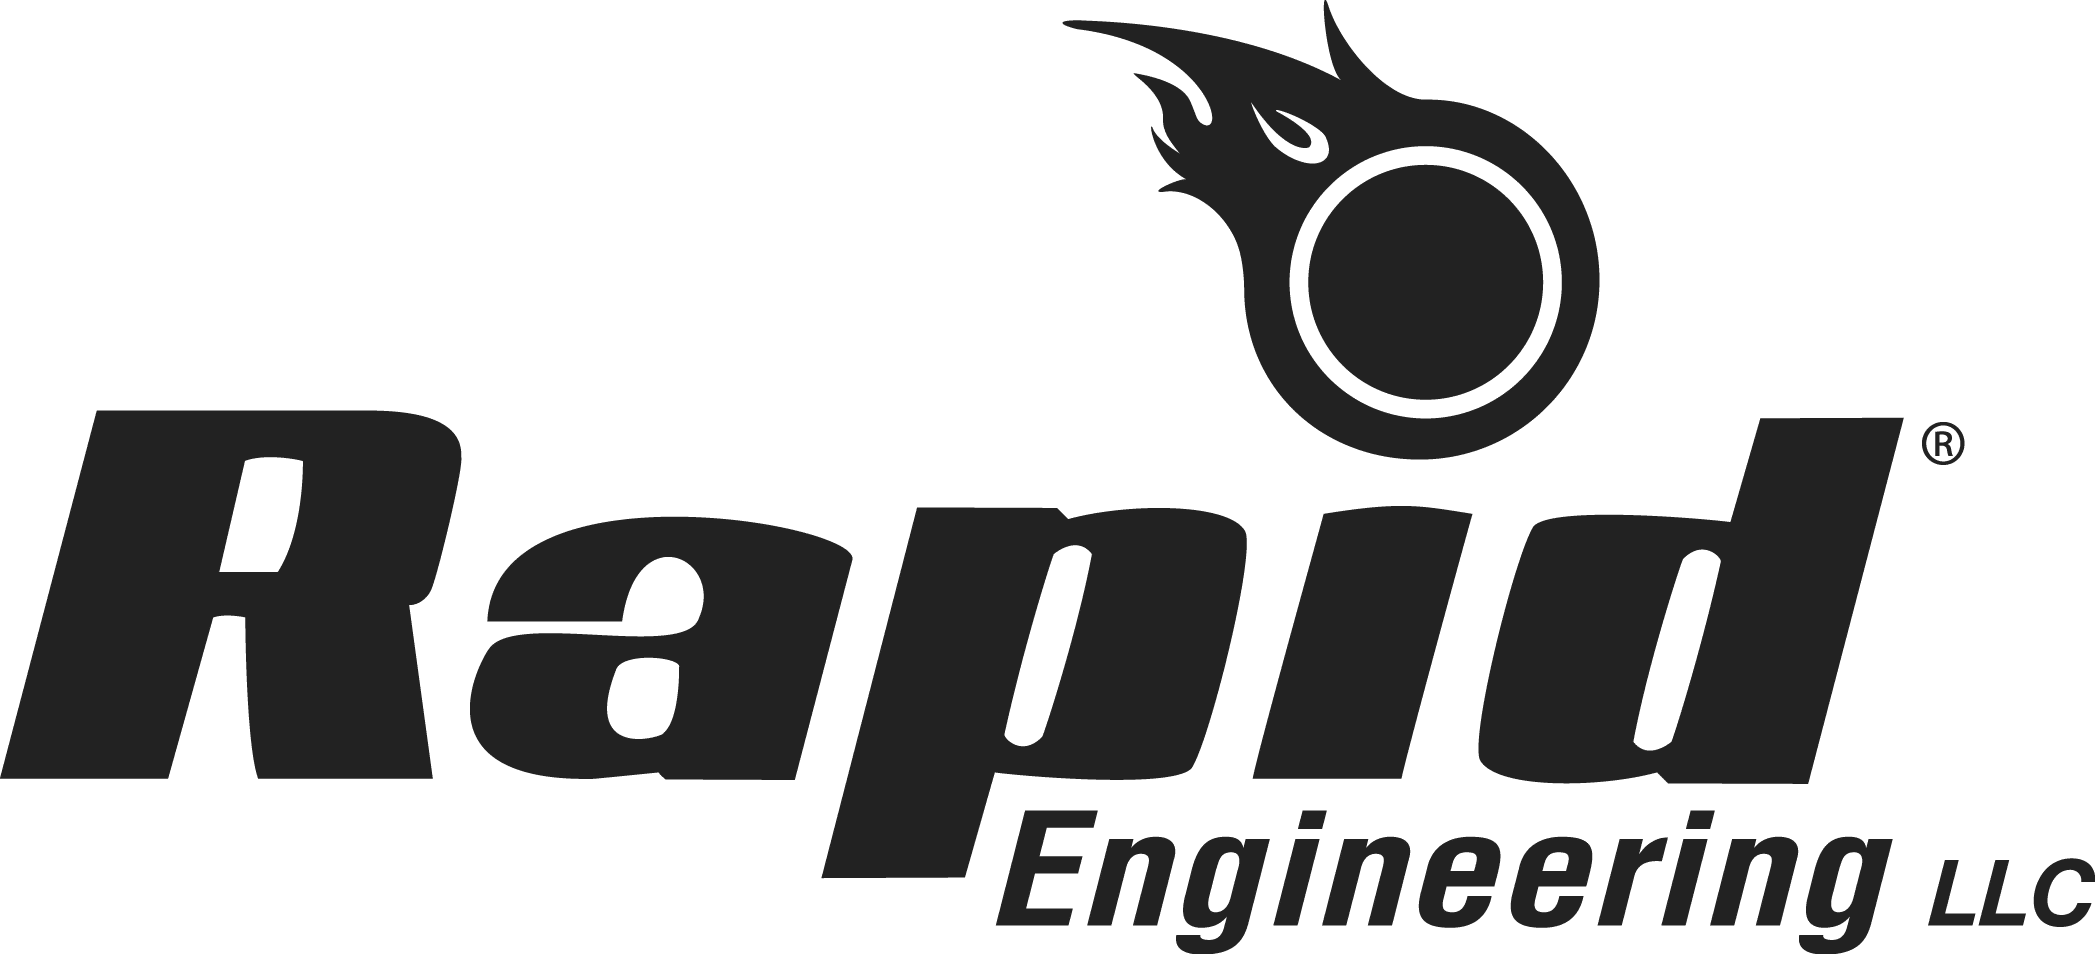 Rapid Engineering logo